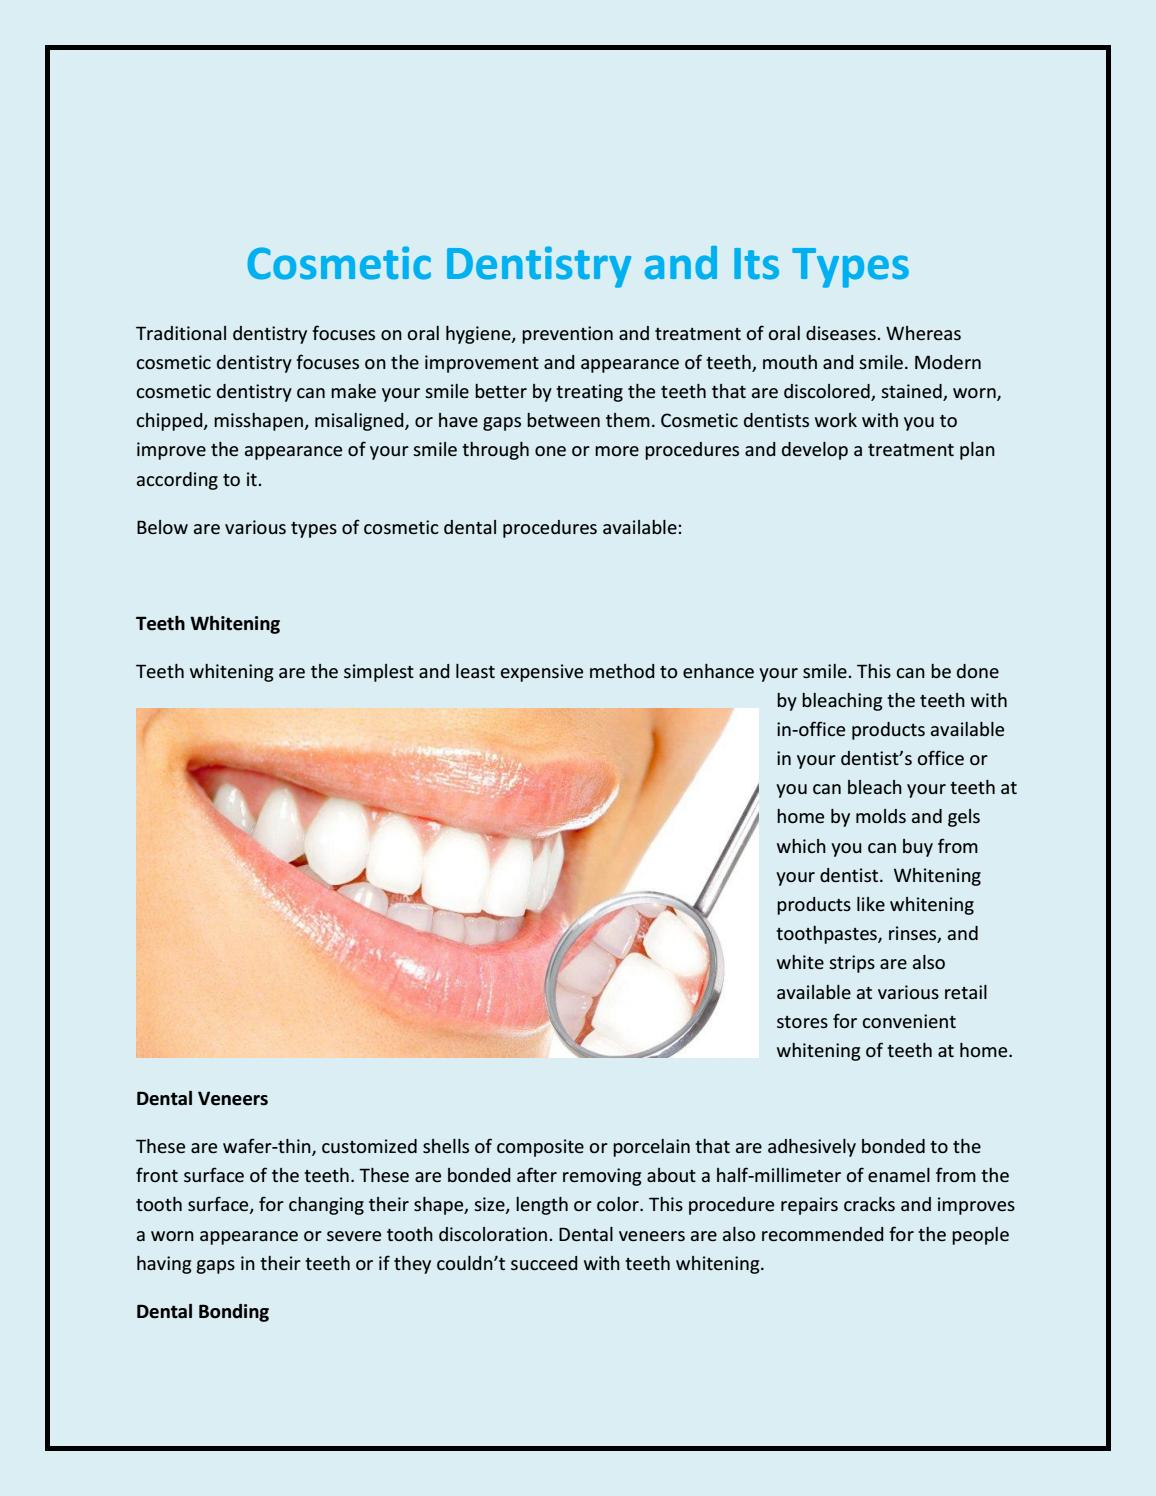 Cosmetic dentistry and its types by allenrose012 - issuu